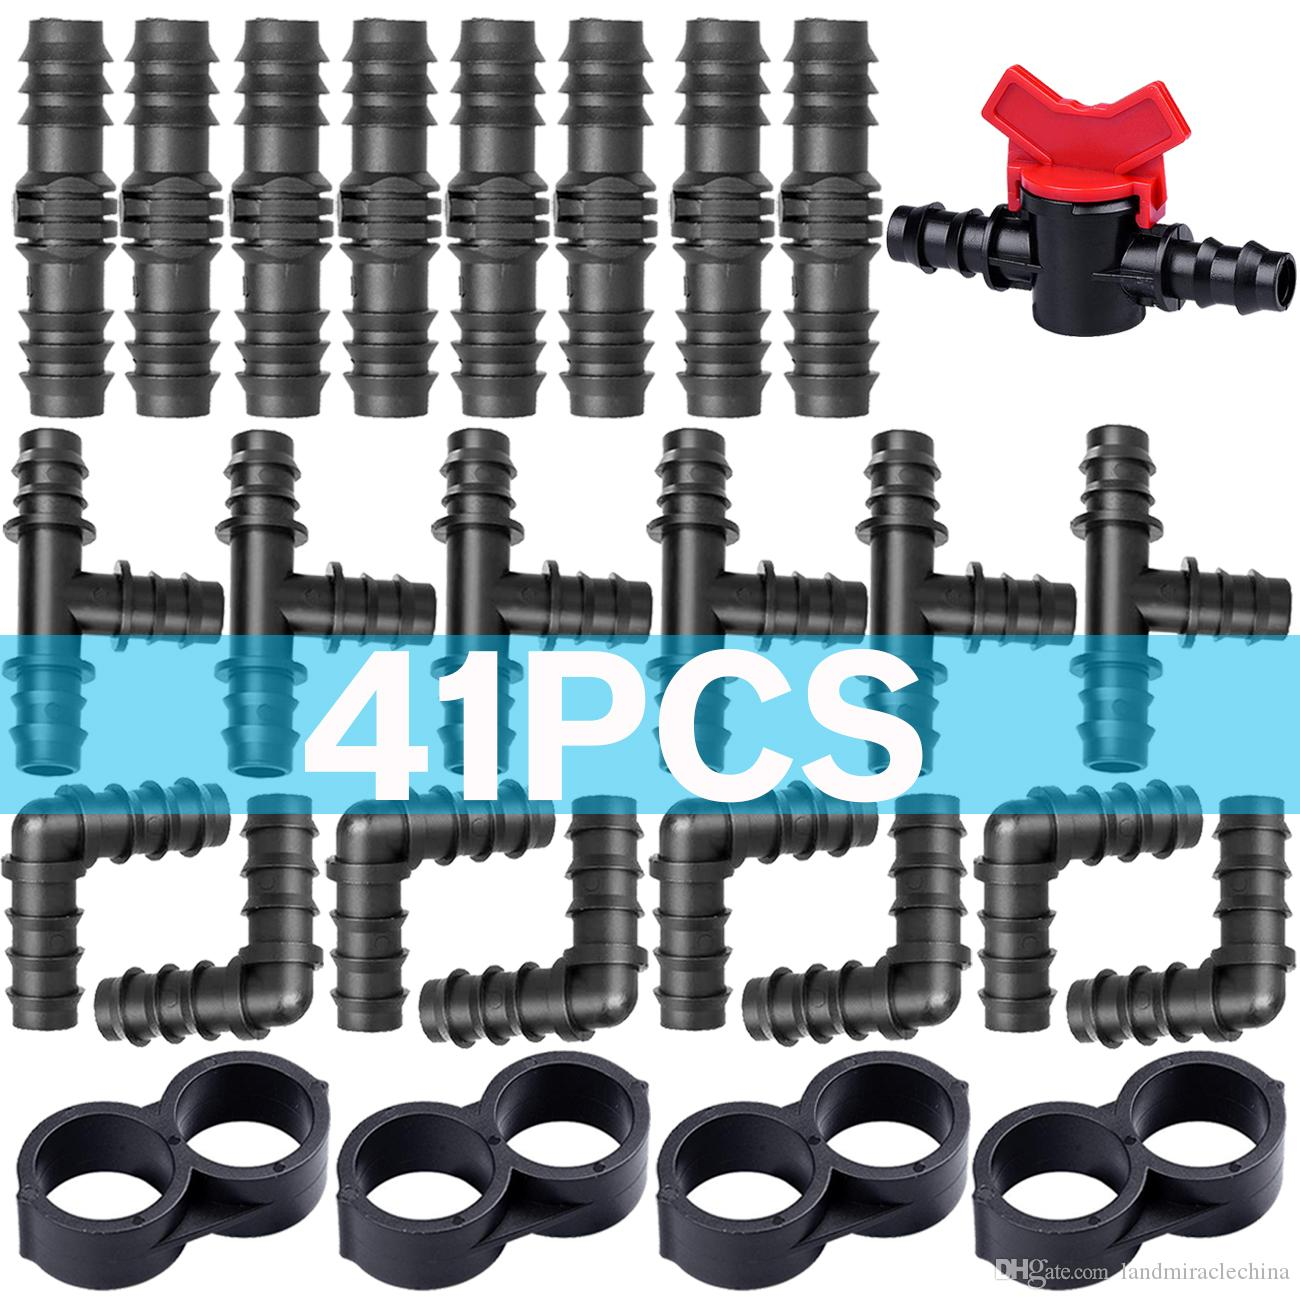 """41PCS Drip Irrigation Tee Barbed Connector Fitting Couplings Valves Shut-off 16mm for 1/2"""" Tubing Hose Watering Garden Tools Greenhouse"""